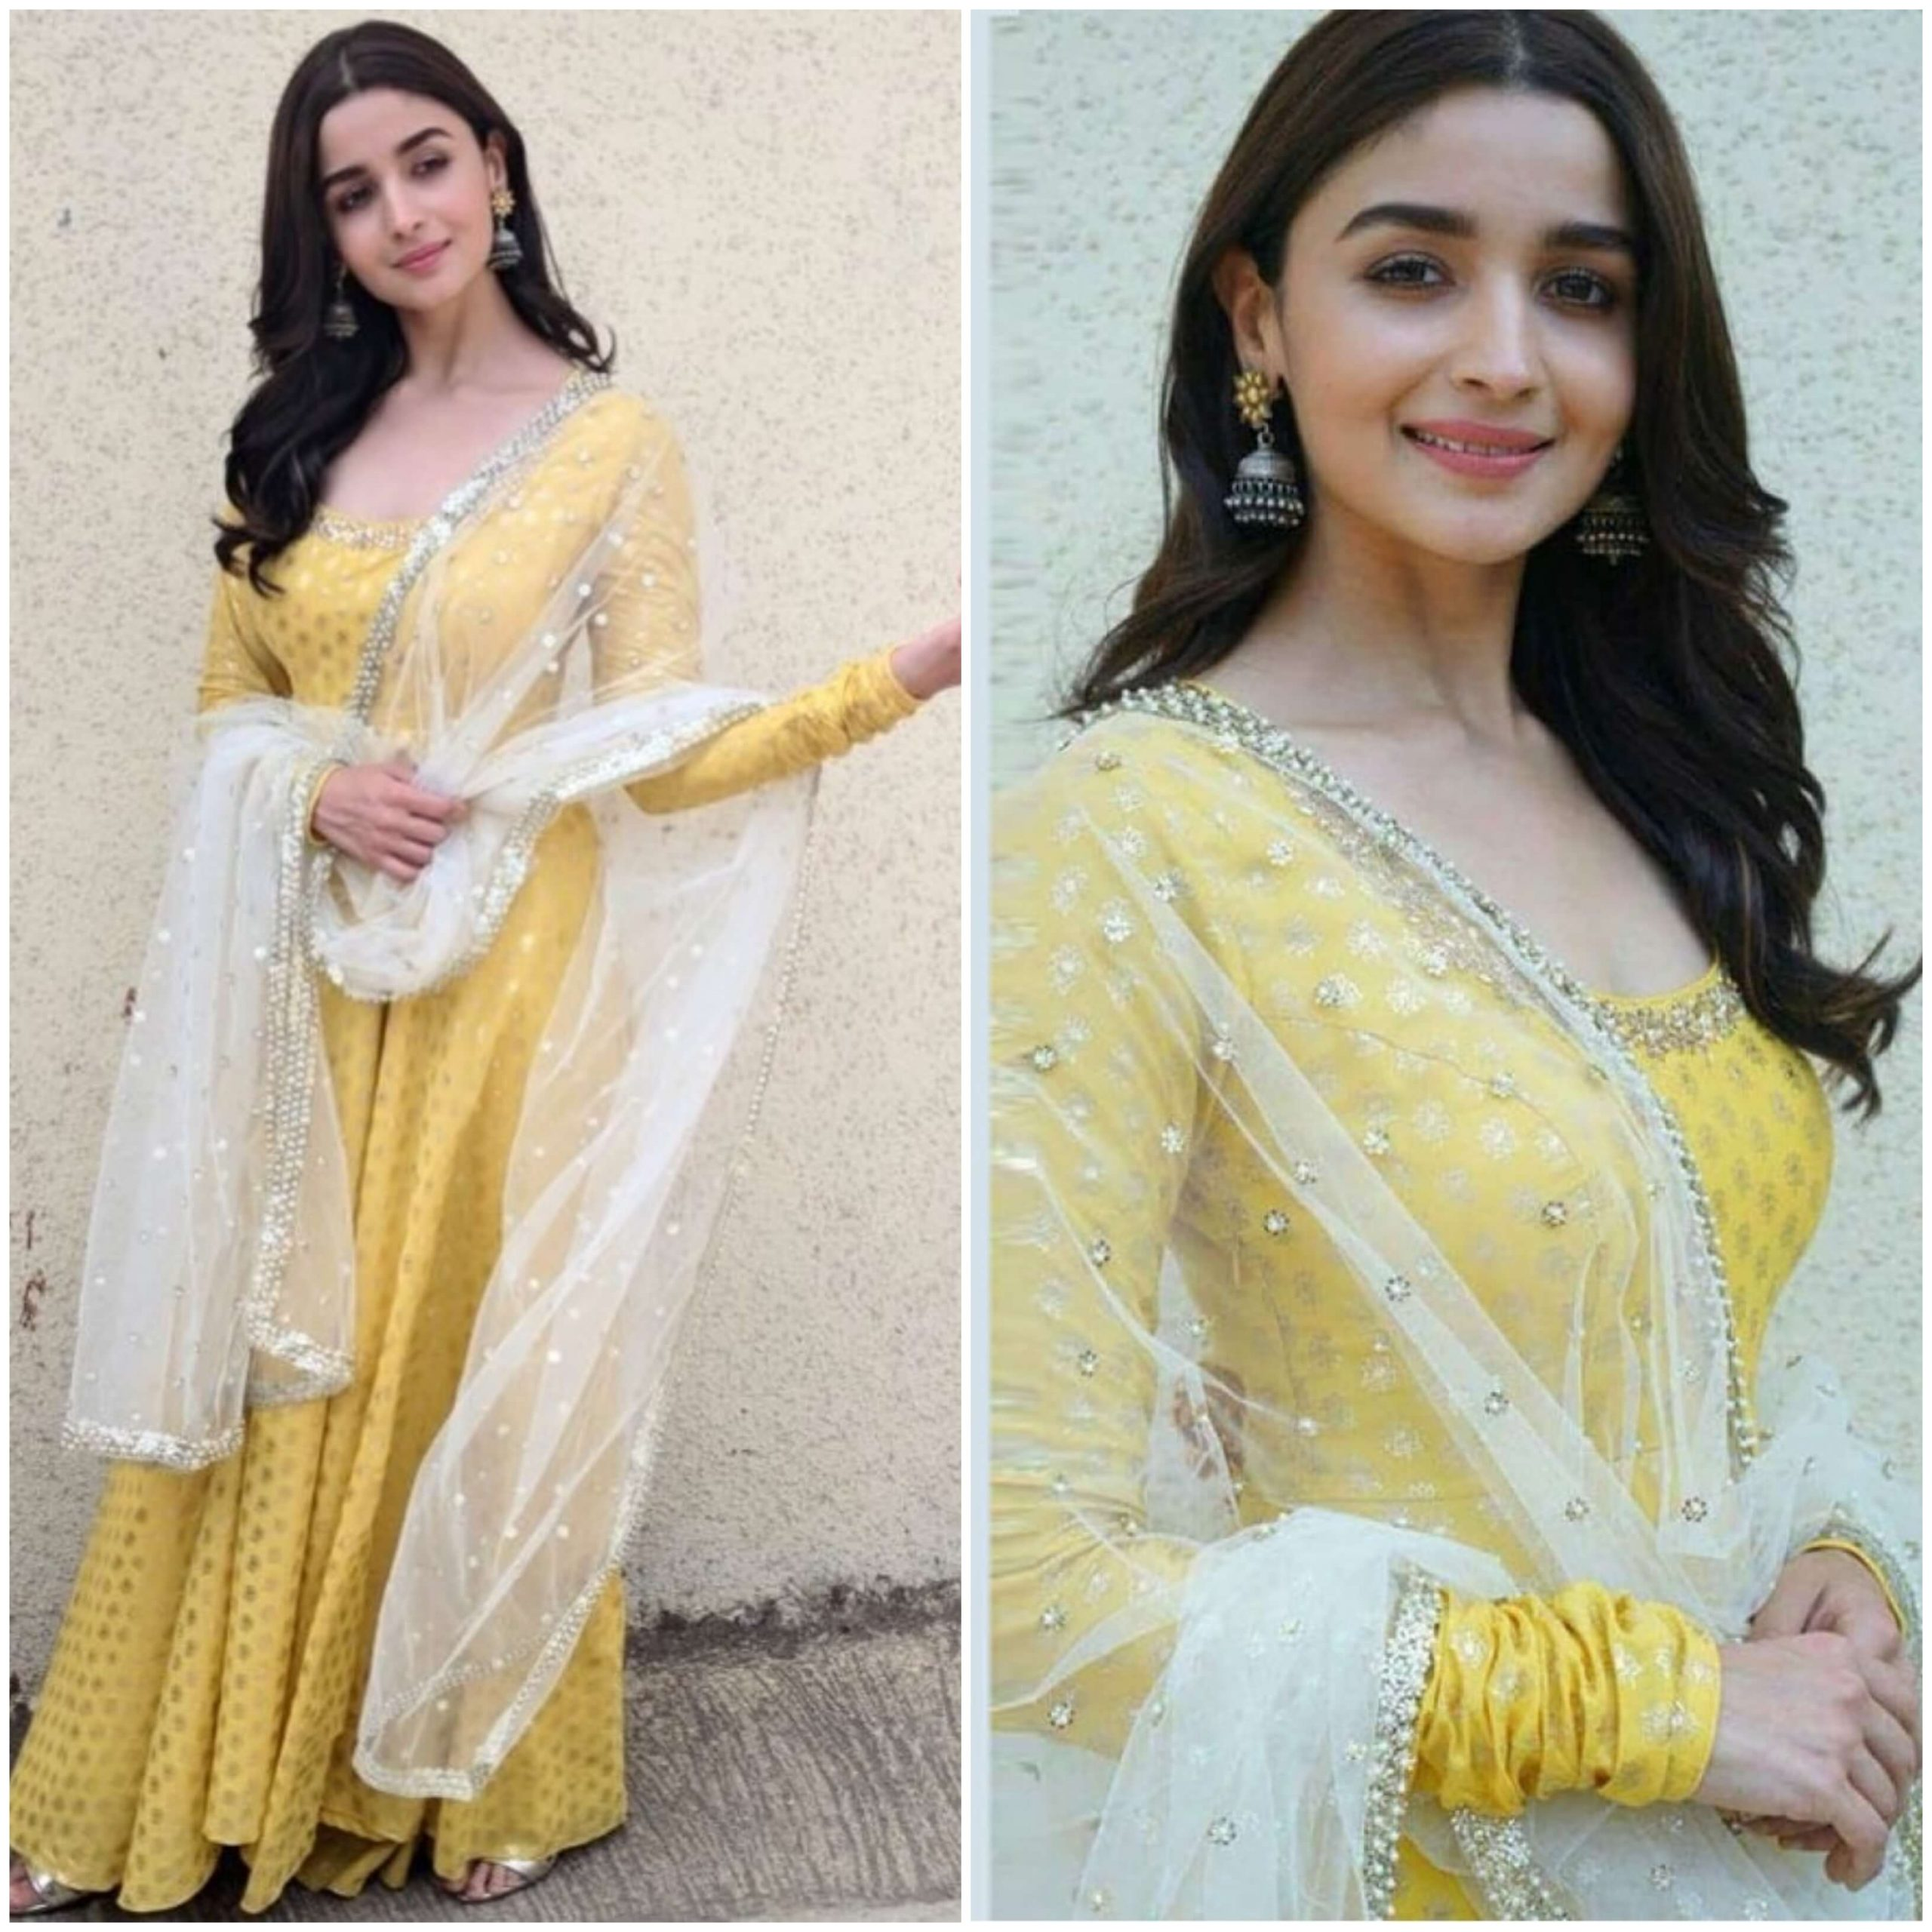 Alia Bhatt Shimmering gold look Traditional Yellow Outfits for Indian Festivals